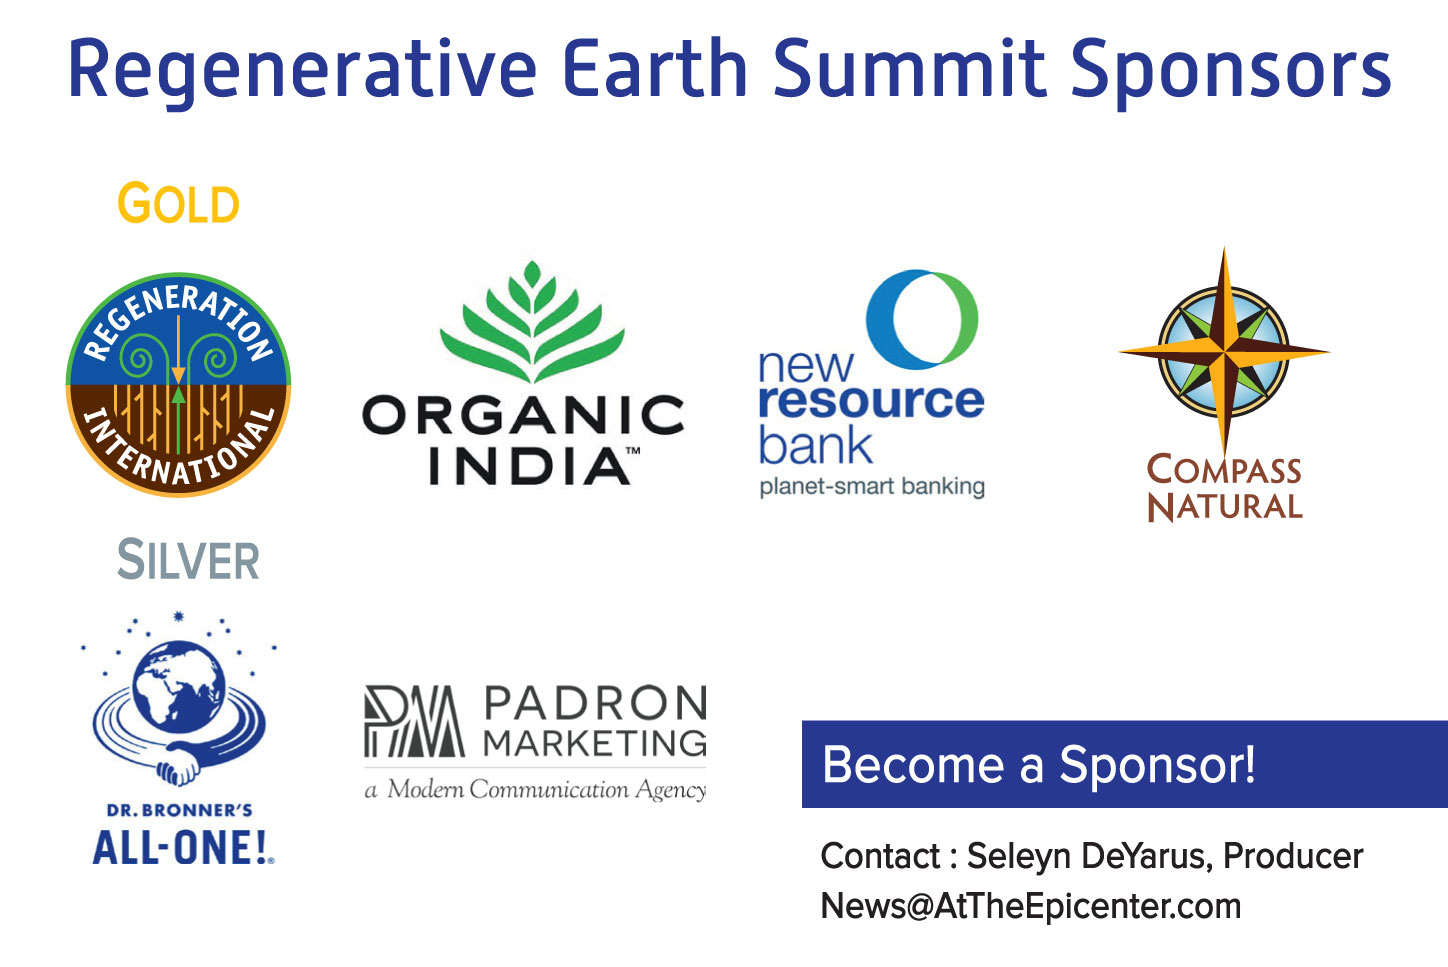 Regenerative Earth Summit sponsors